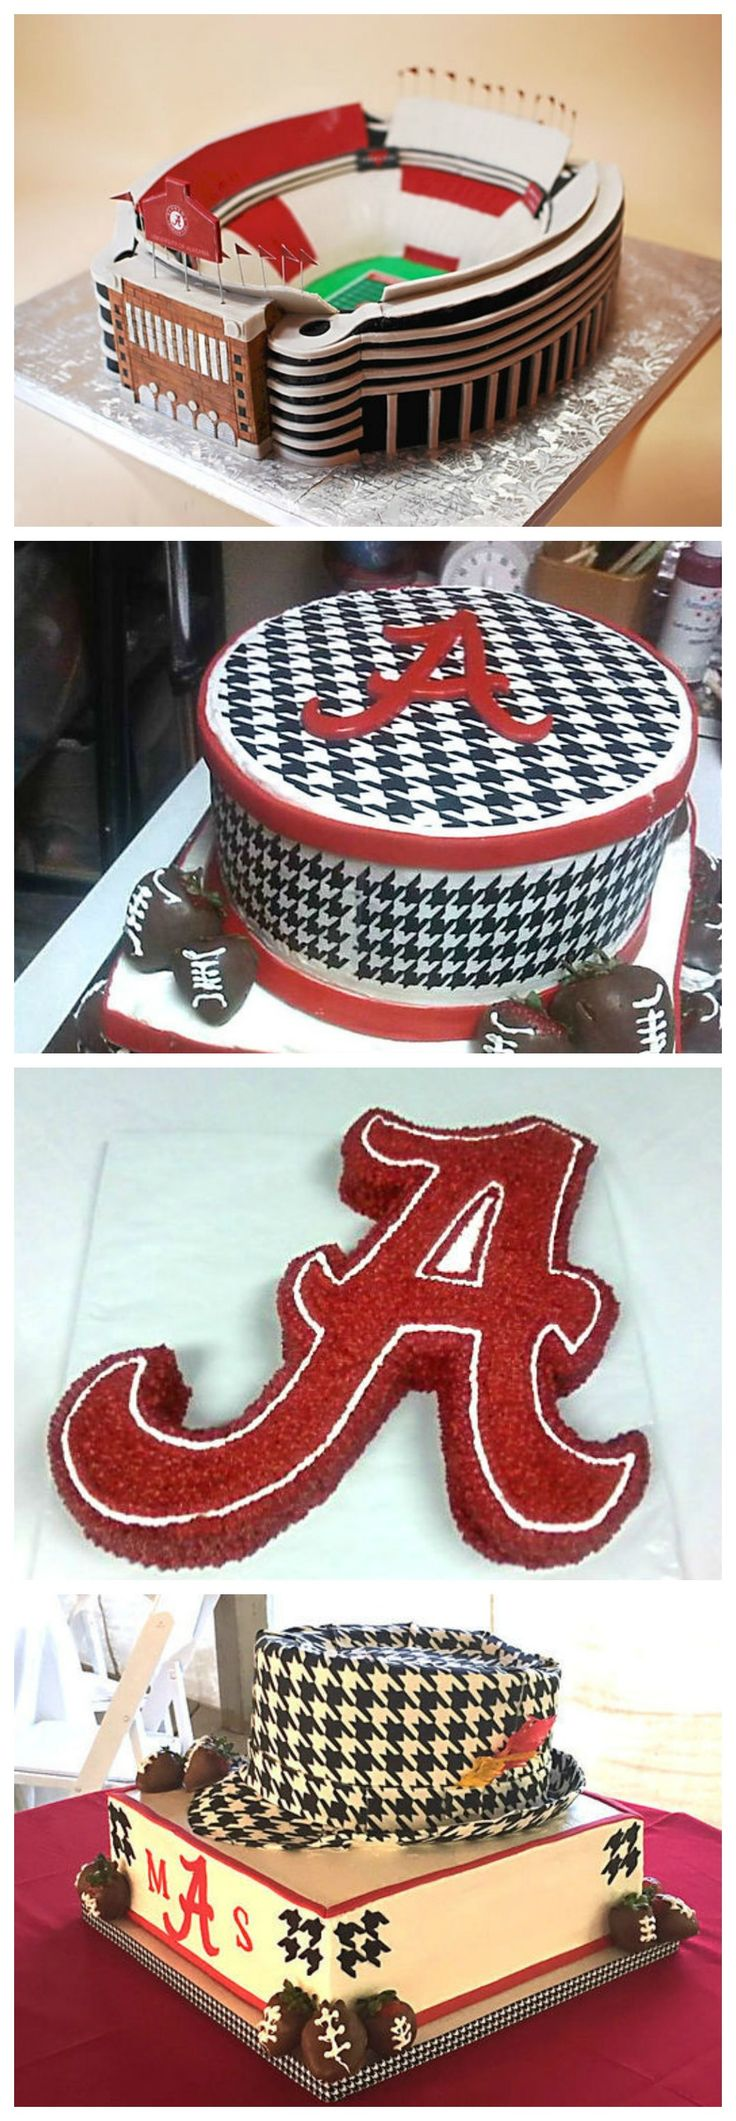 Today, grooms' cakes are typically decorated to represent one of the man's hobbies or interests or, here in Alabama, favorite college football teams.